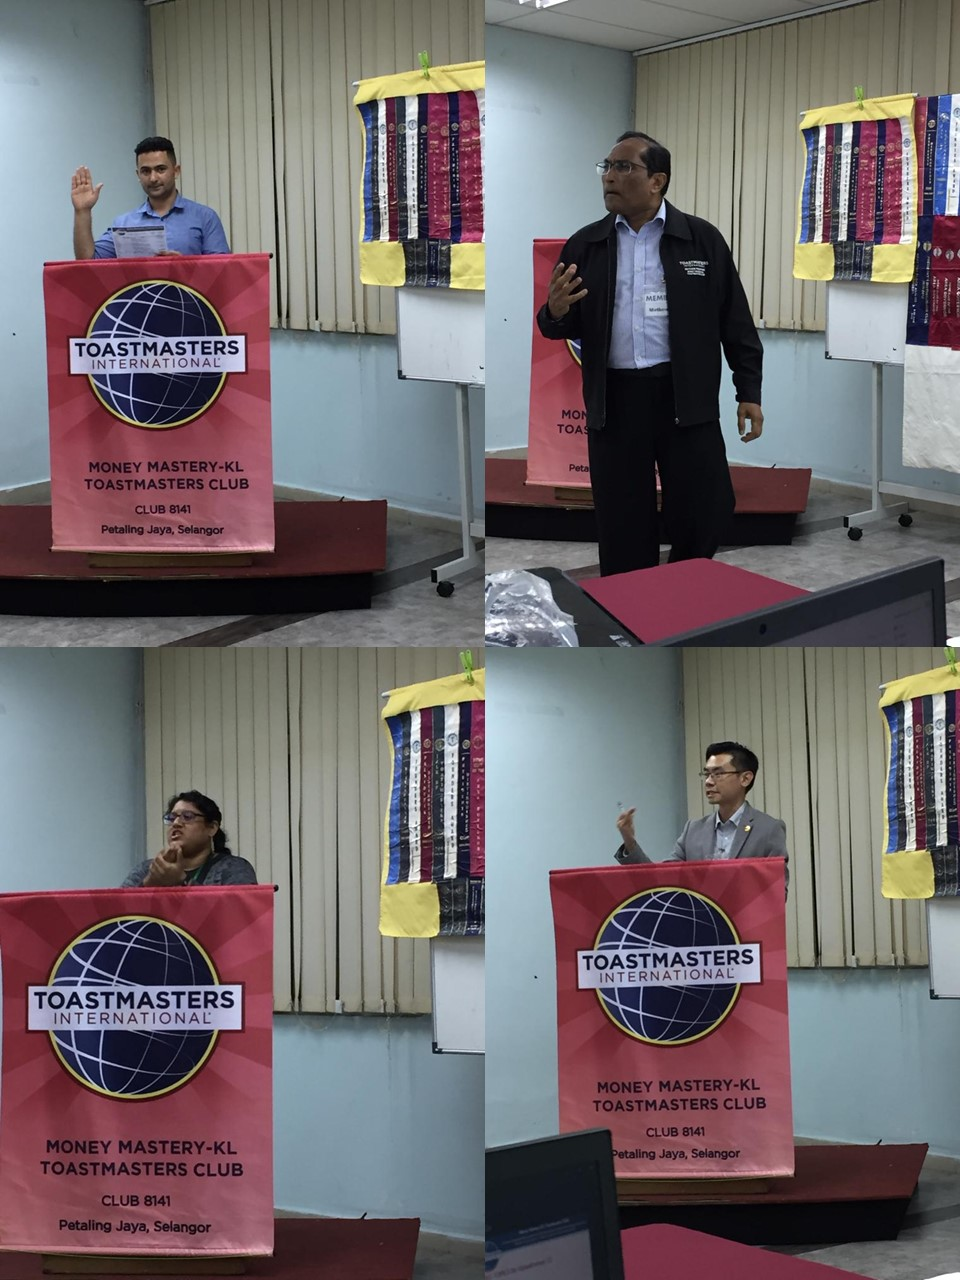 hight resolution of ron yeap acb cl played the role of toastmaster of the evening he talked about his own endeavours in public speaking and use of creativity at work and as a